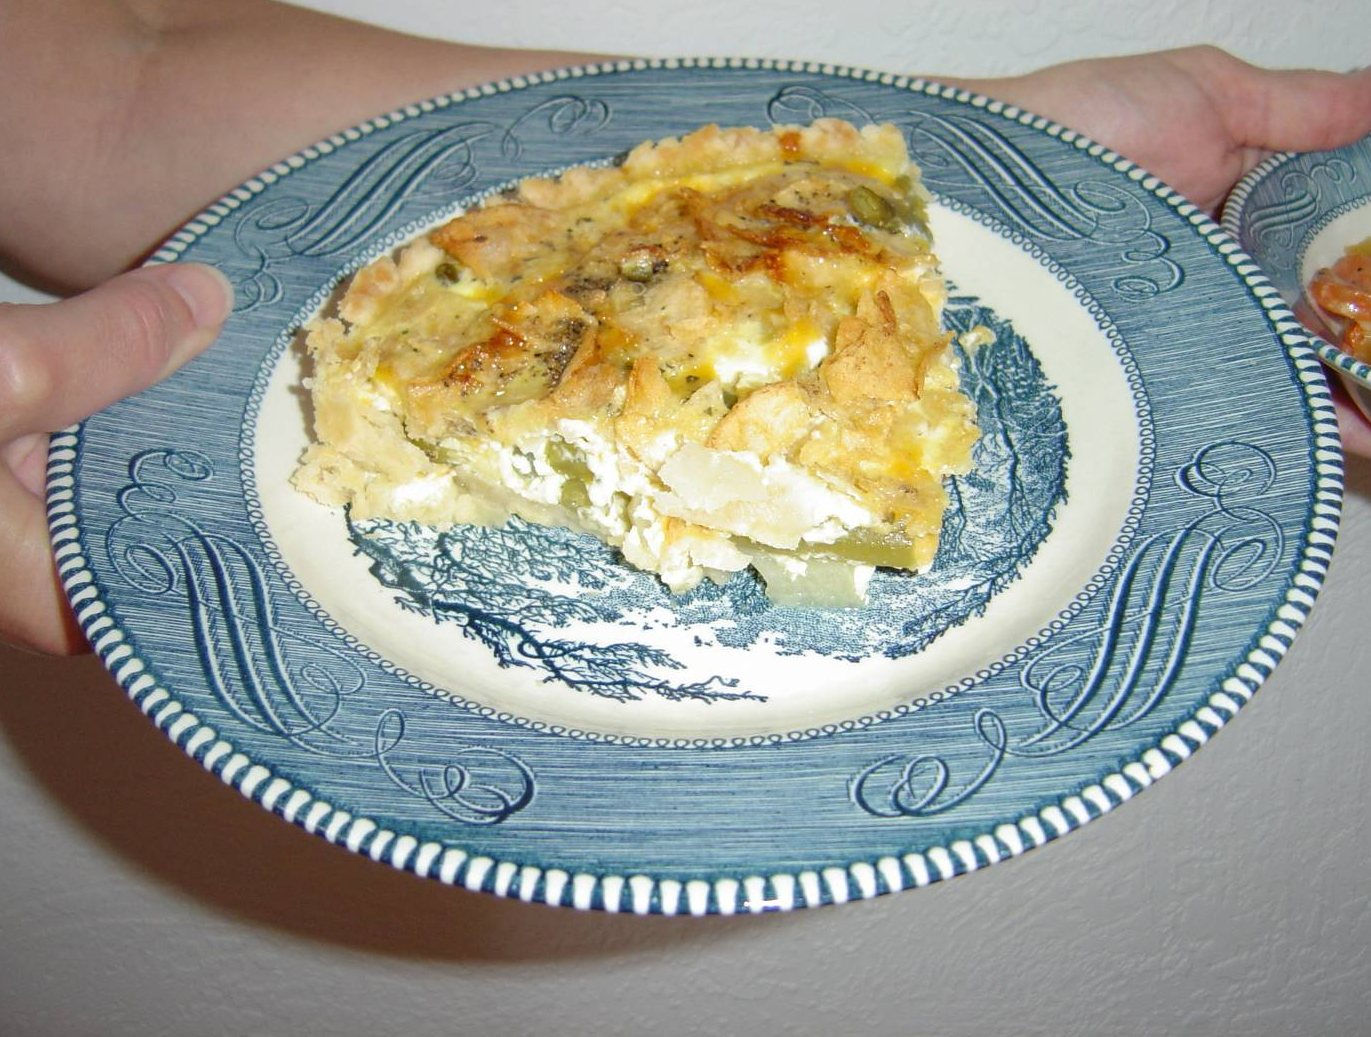 piece-of-my-crunch-quiche.jpeg